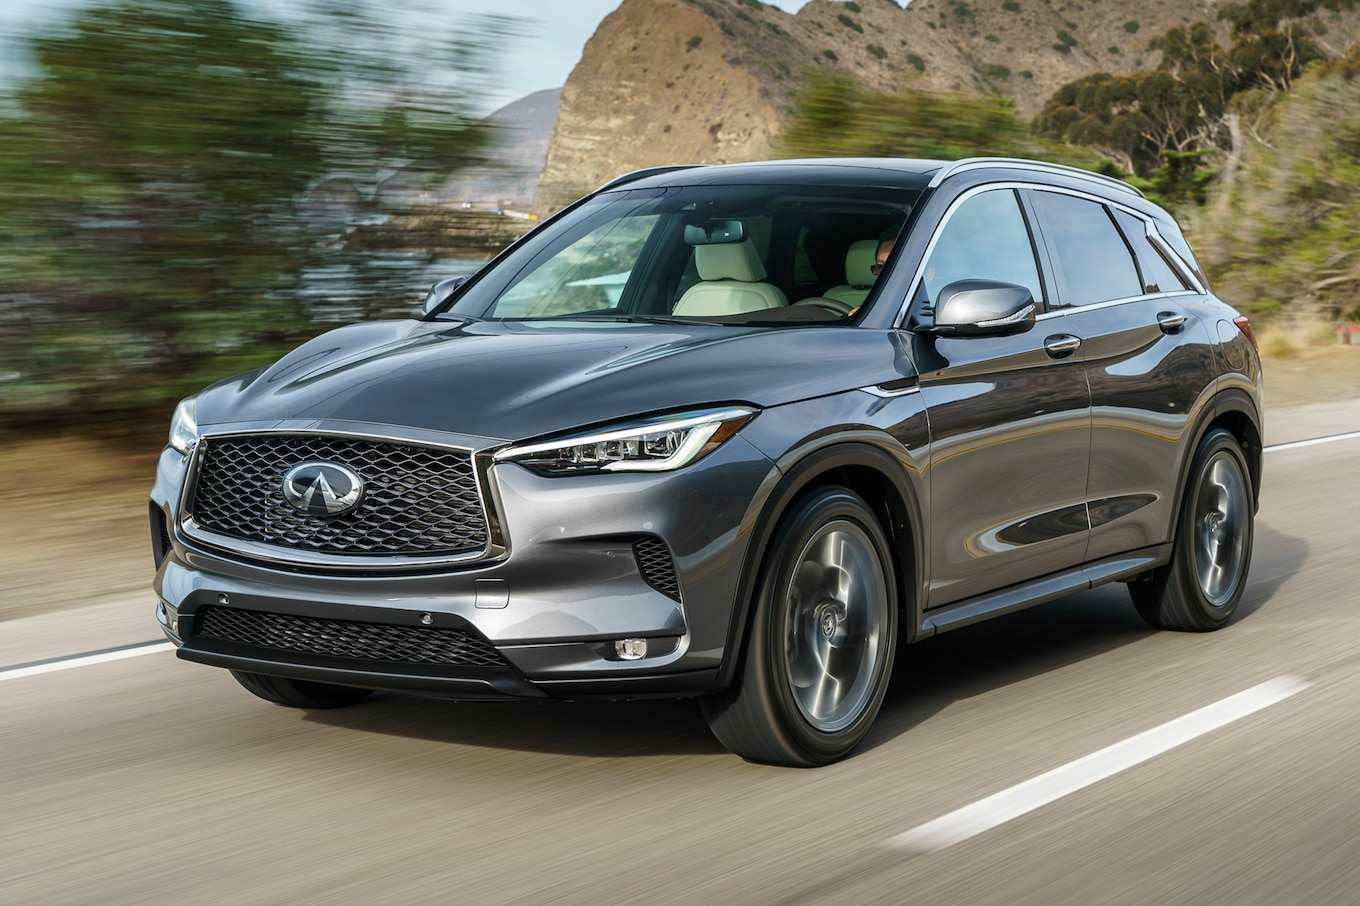 80 All New Best 2019 Infiniti Wx60 Redesign Price And Review Price by Best 2019 Infiniti Wx60 Redesign Price And Review